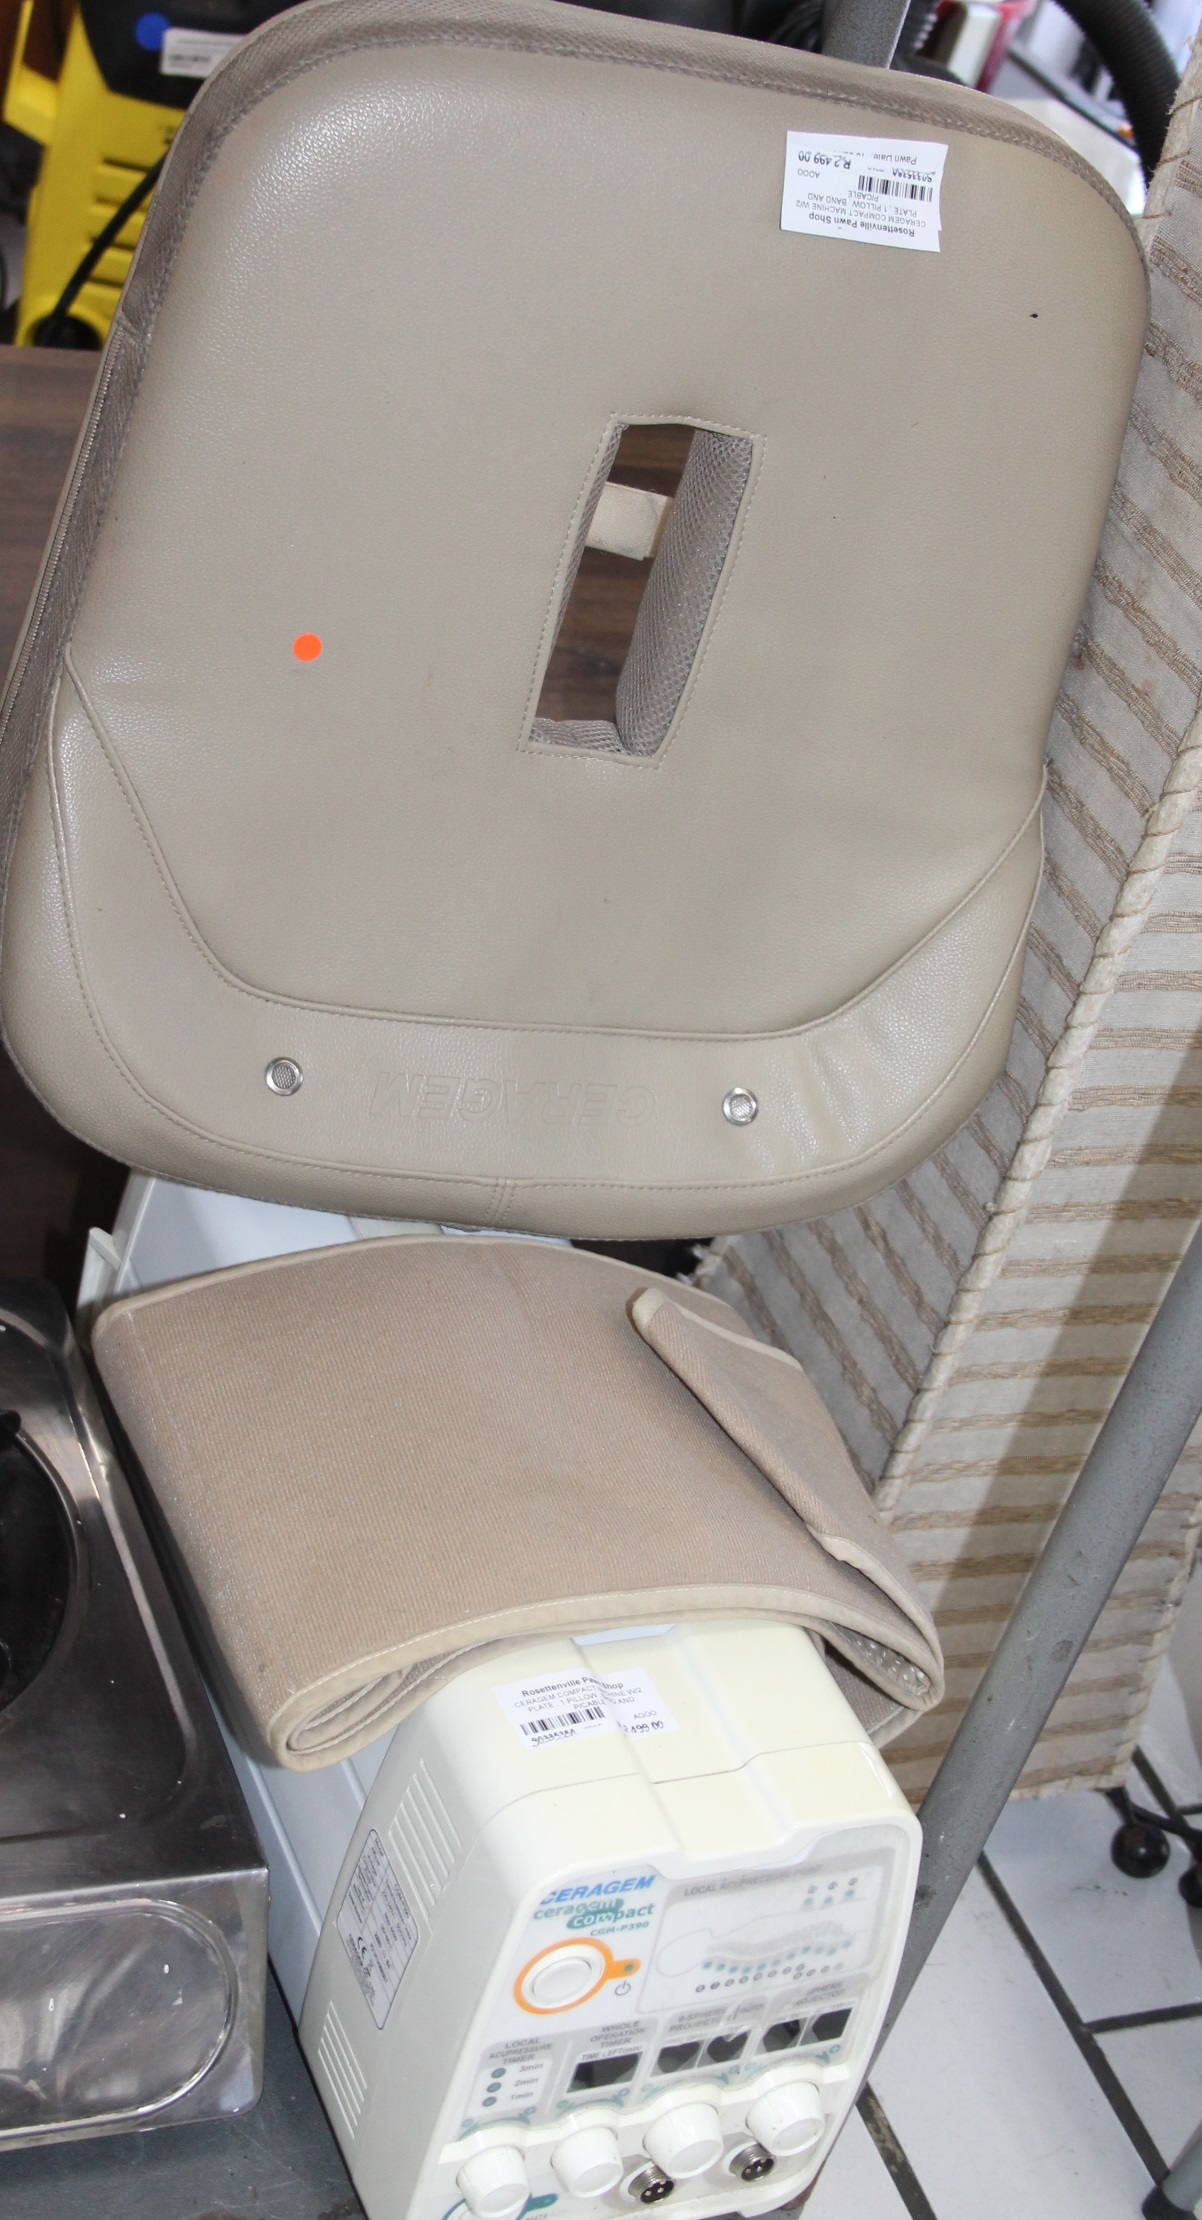 S033538A Ceragem compact machine with 2 plate and pillow #Rosettenvillepawnshop